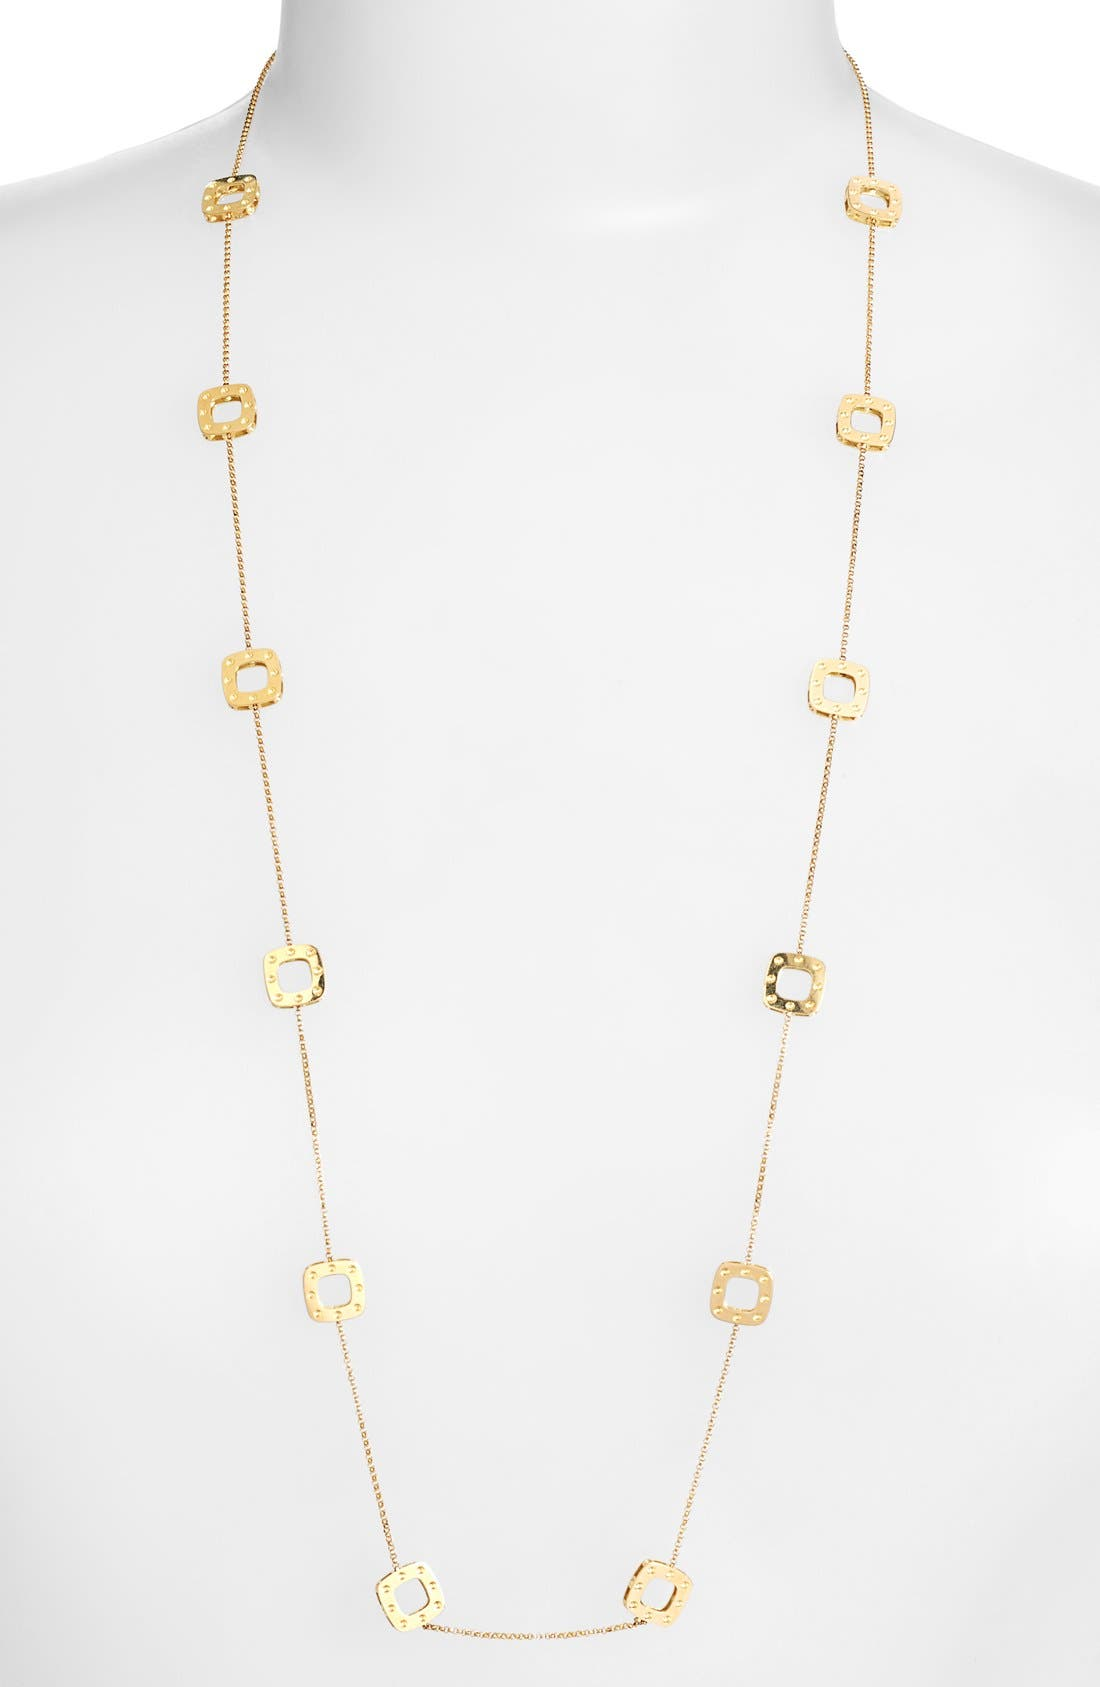 Roberto Coin 'Pois Moi' Long Station Necklace